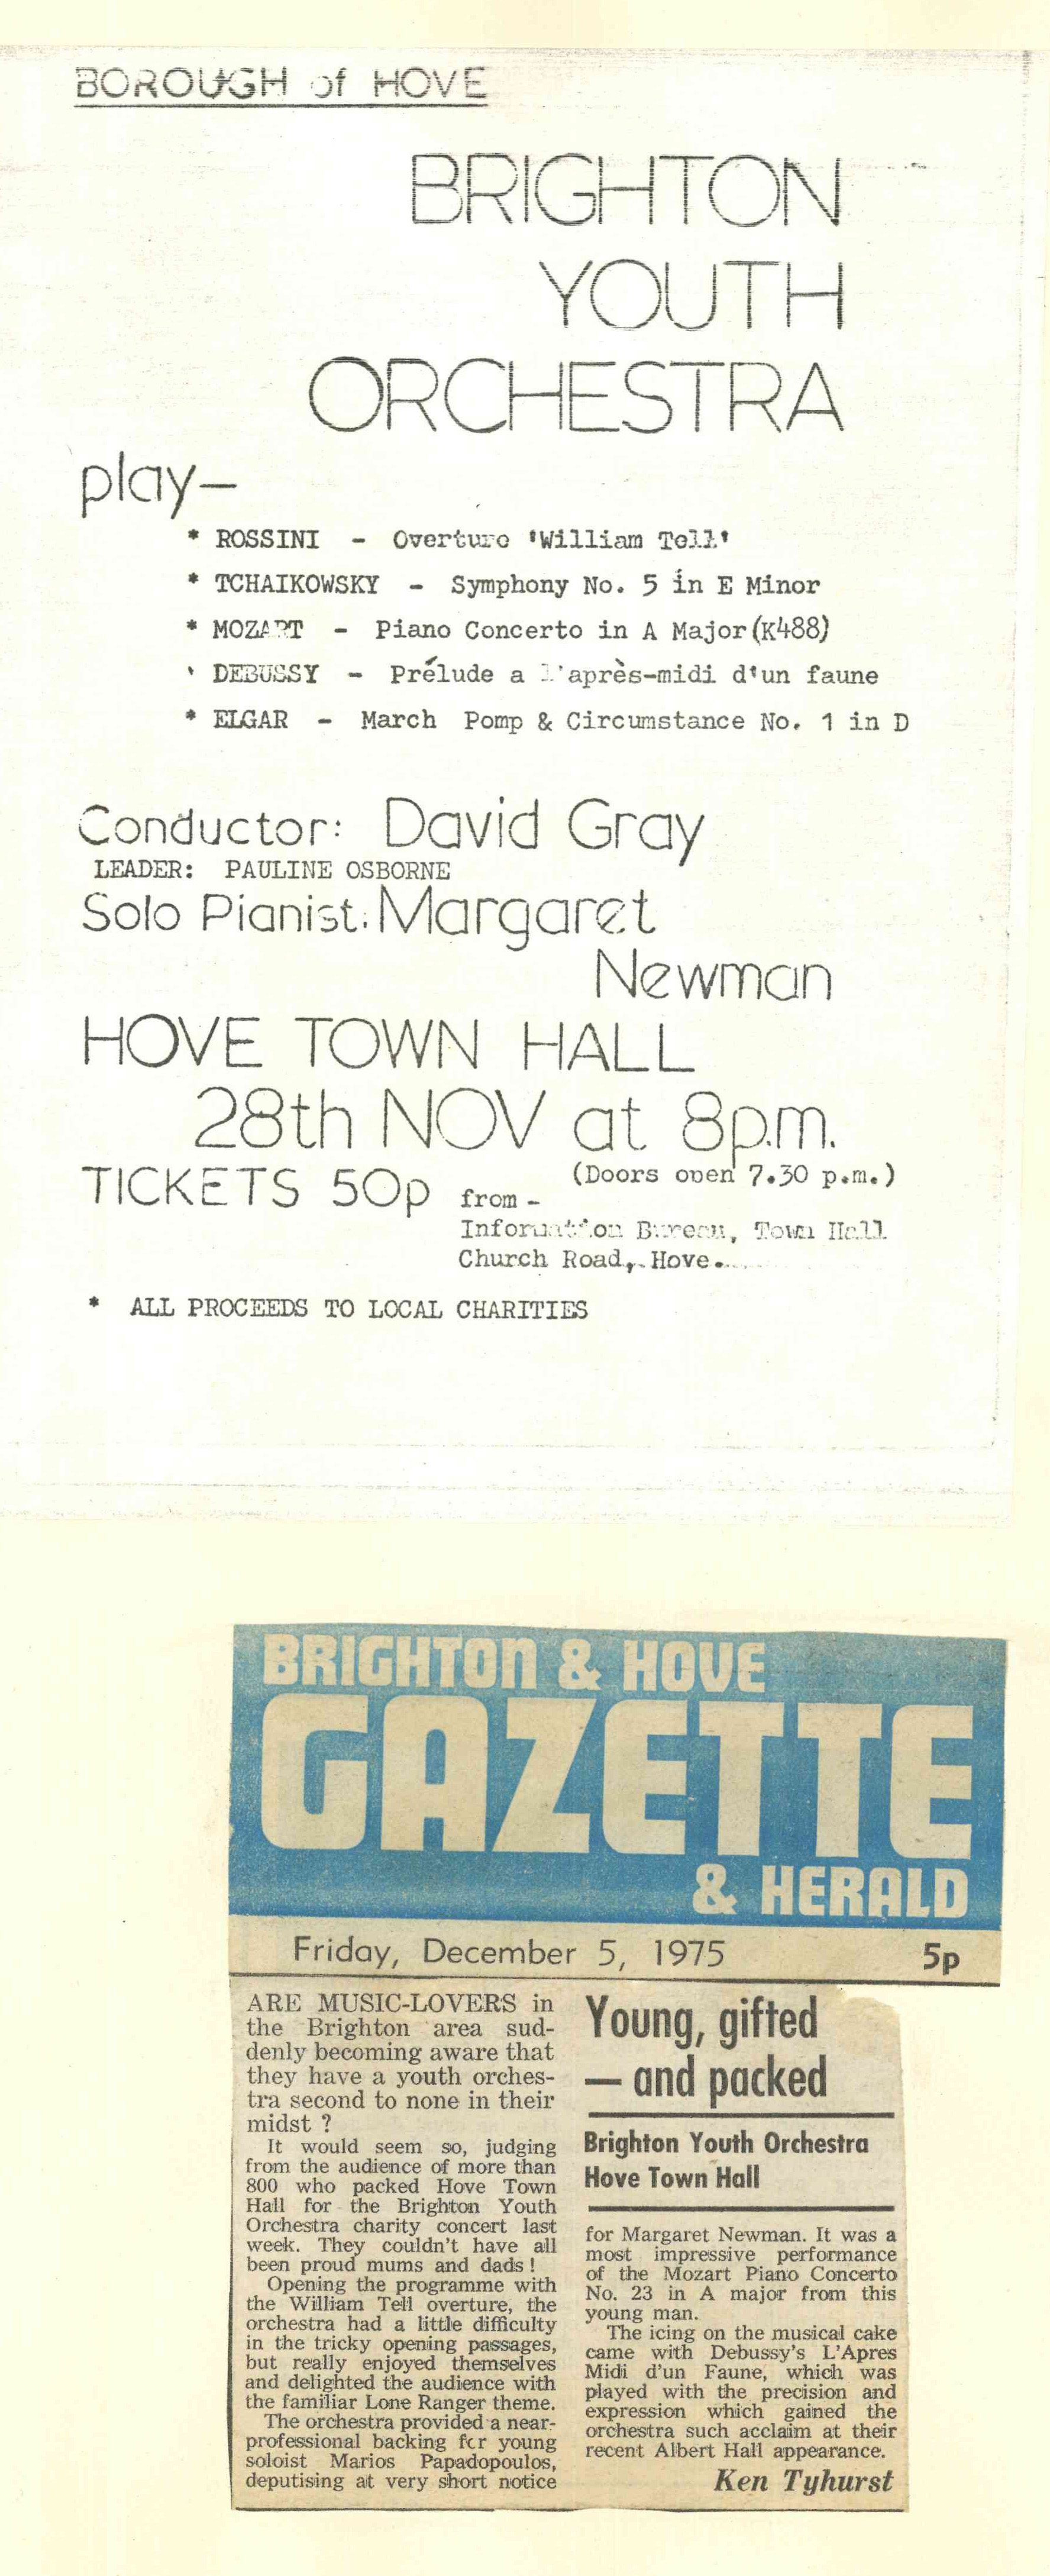 00008-Brighton and Hove Gazette- Hove Town Hall, 5th December 1975.jpg